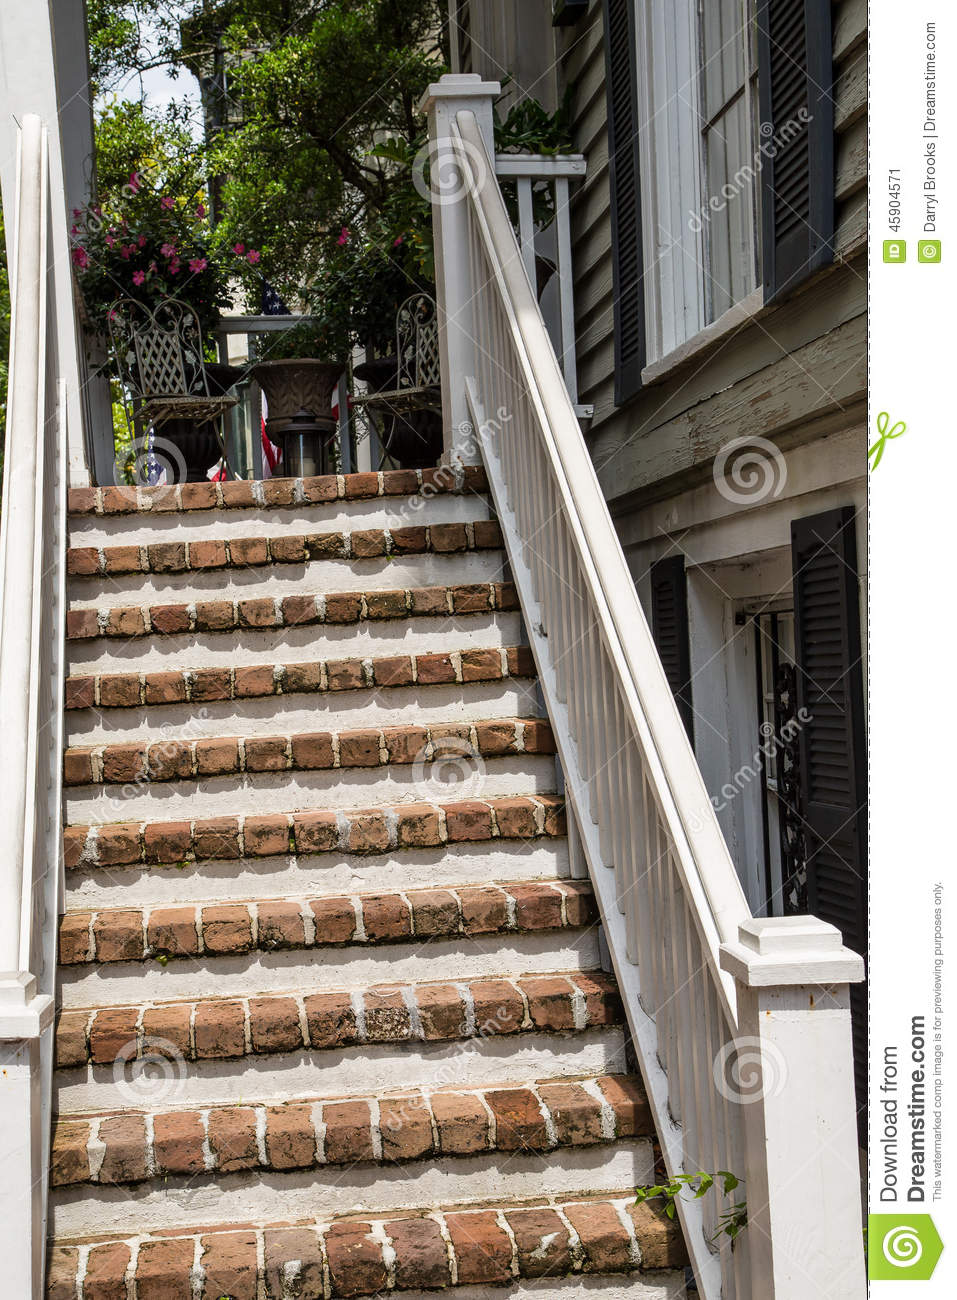 Brick and mortar steps up old wood porch stock photo for Steps in building a home